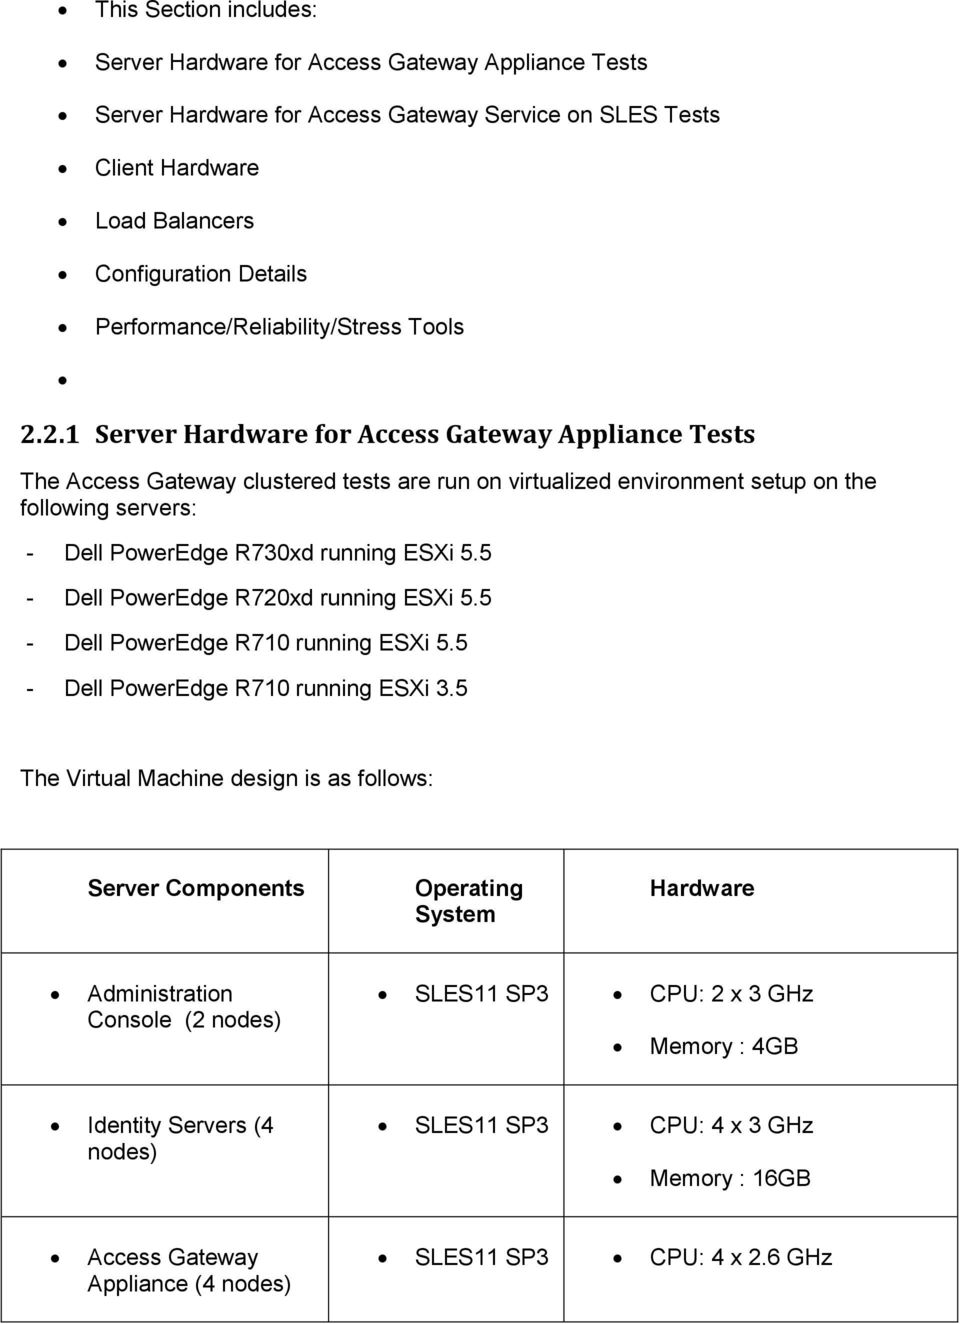 2.1 Server Hardware for Access Gateway Appliance Tests The Access Gateway clustered tests are run on virtualized environment setup on the following servers: - Dell PowerEdge R730xd running ESXi 5.